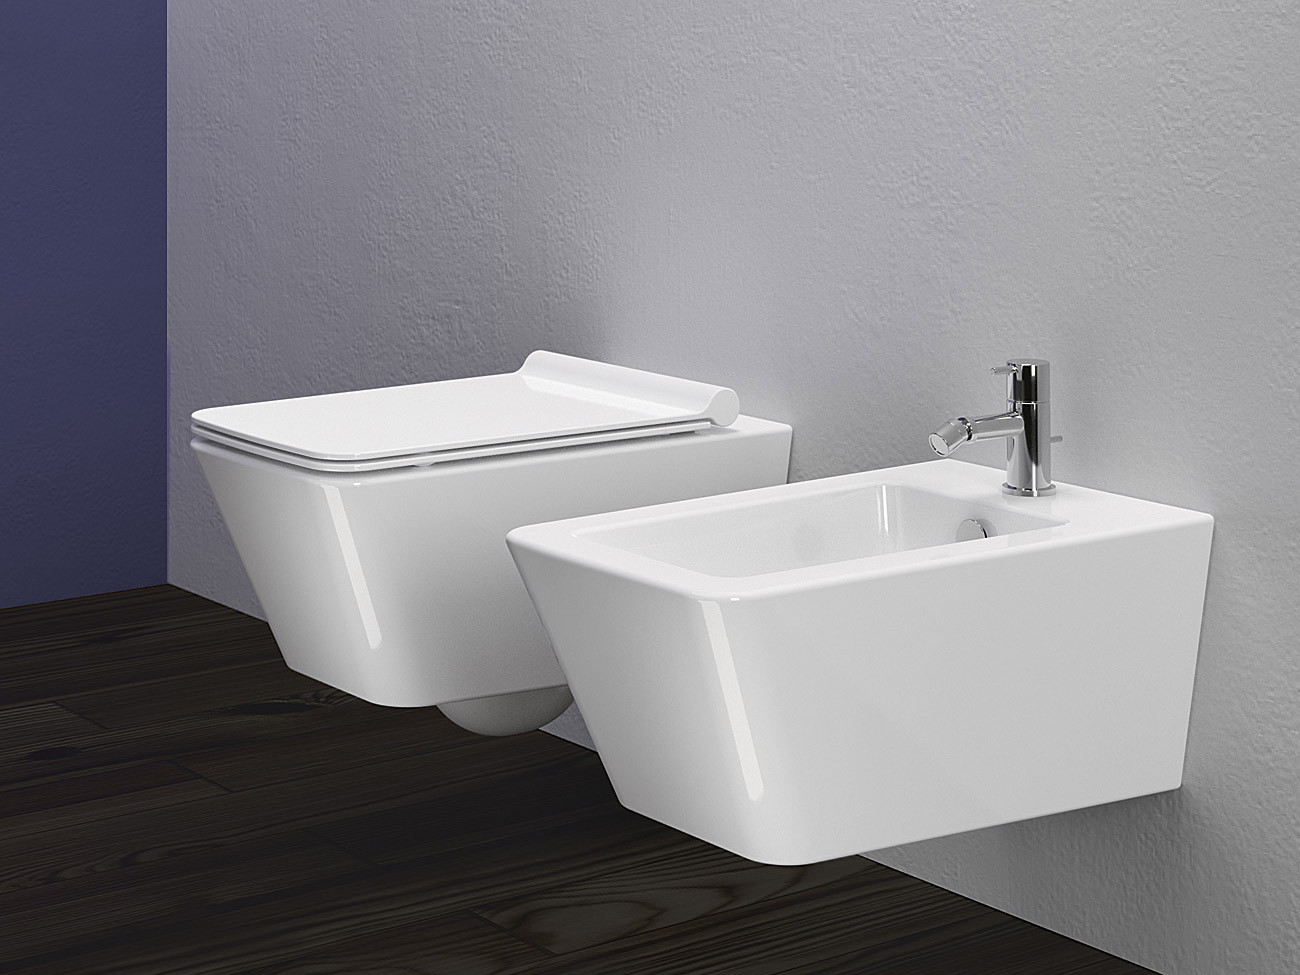 Proiezioni 56 bidet by ceramica catalano for Ceramica catalano